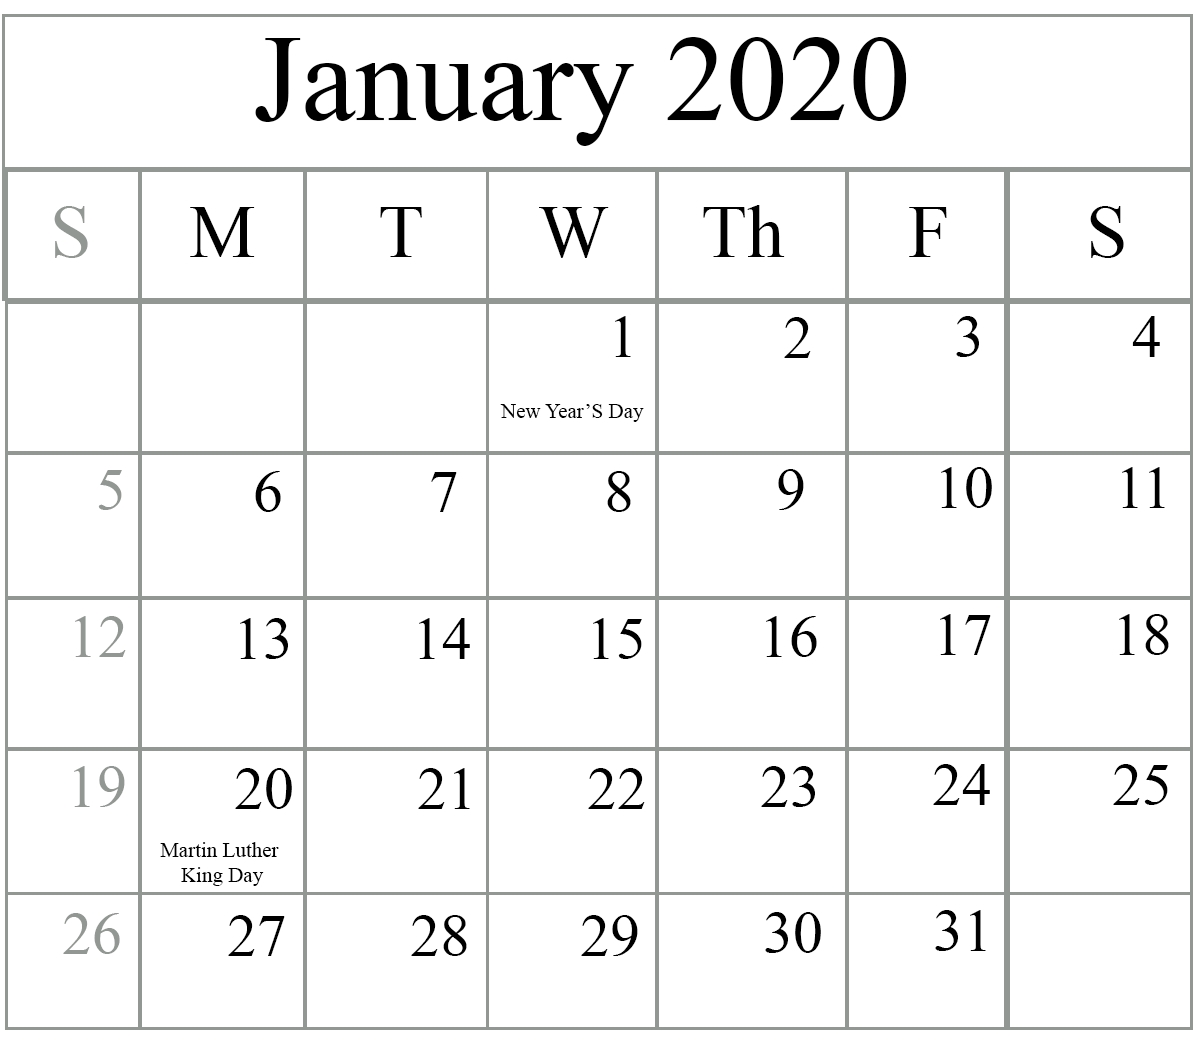 Free Word Calendar Templates 2020 - Wpa.wpart.co-Free Microsoft Word Calendar Template 2020